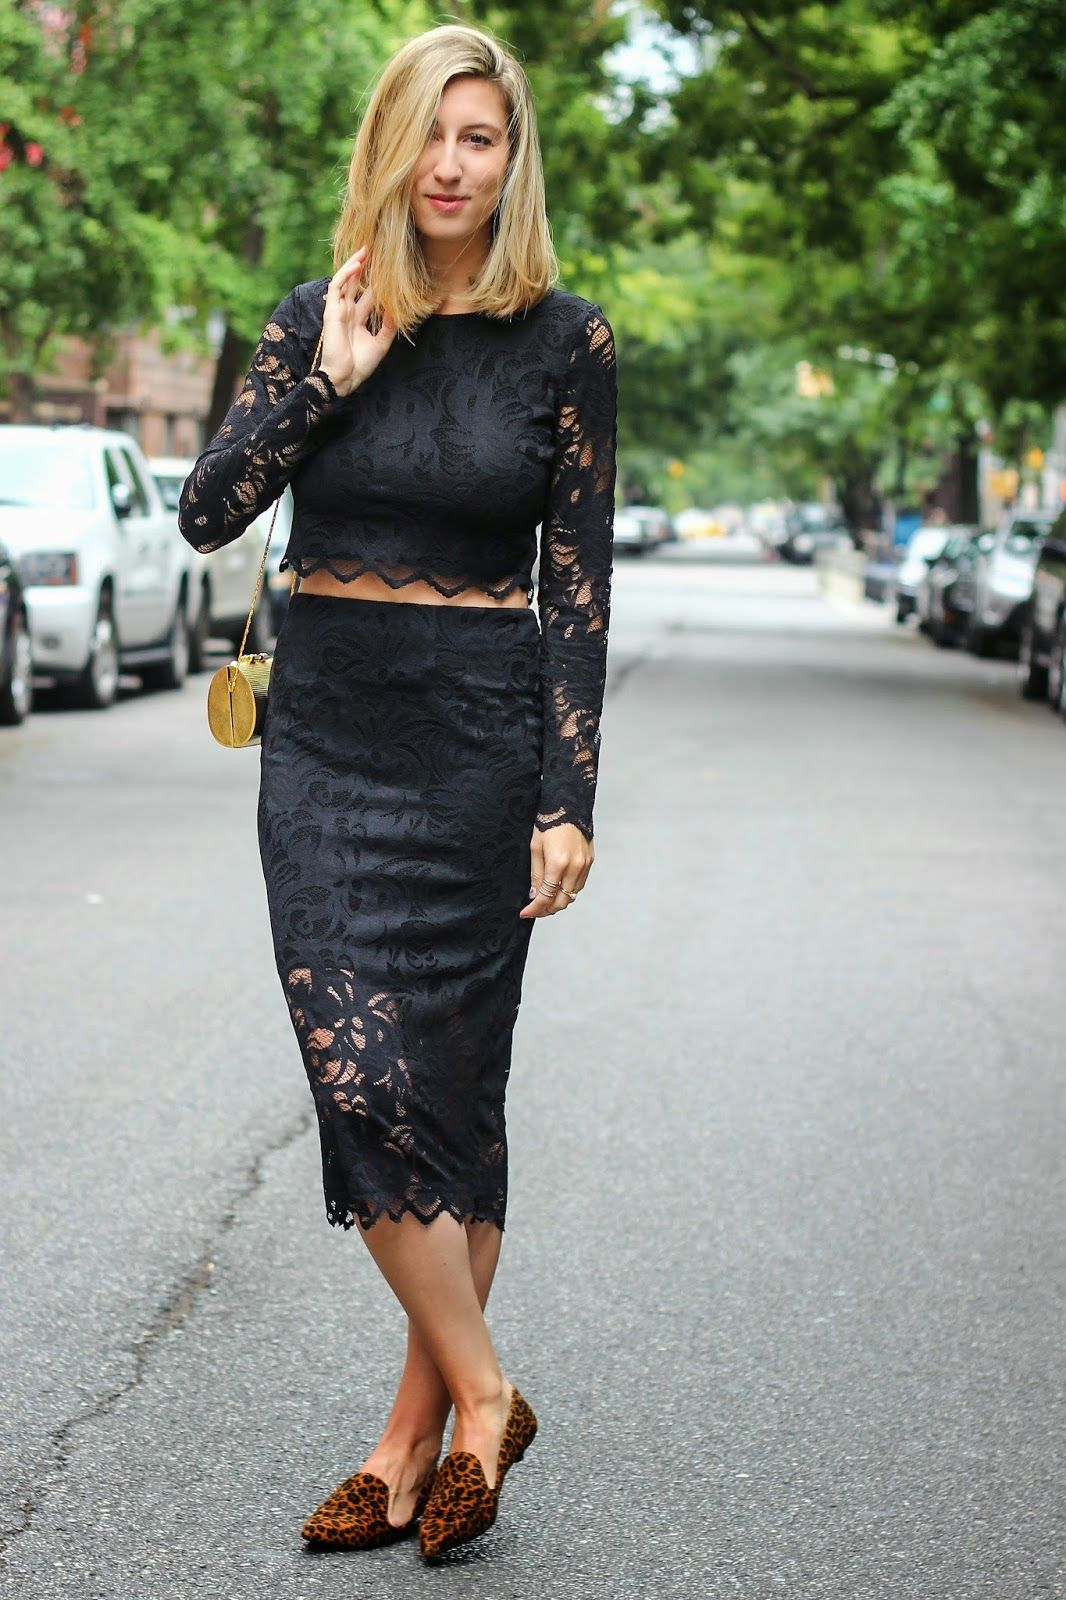 Darling Two// lace on lace @hm